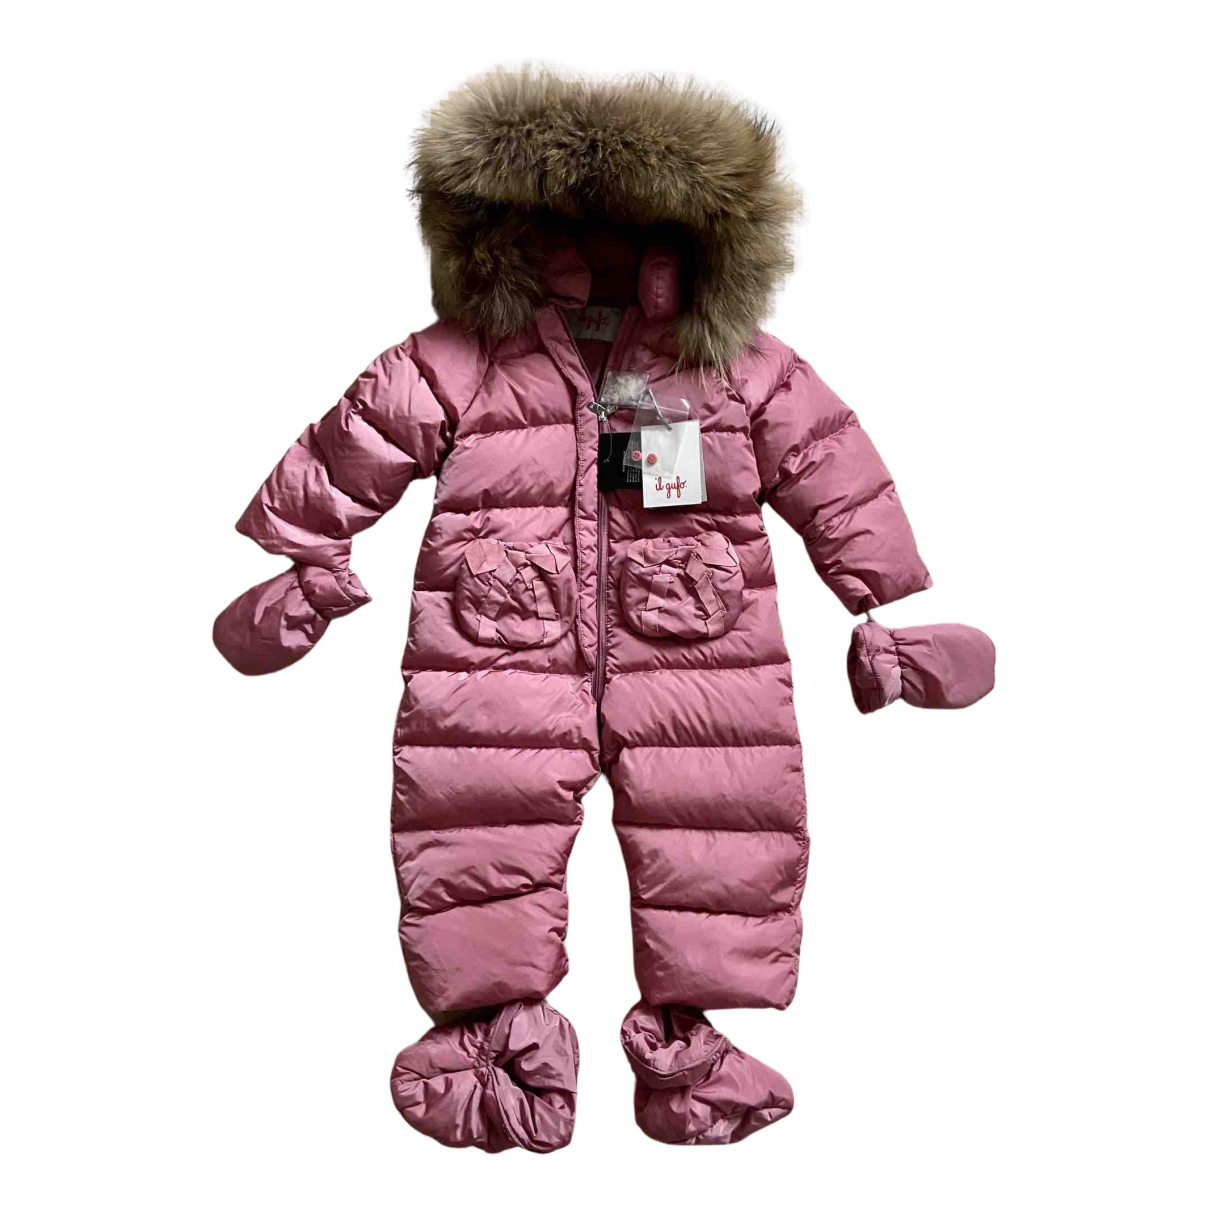 Il Gufo N Pink Outfits for Kids 2 years - up to 86cm FR